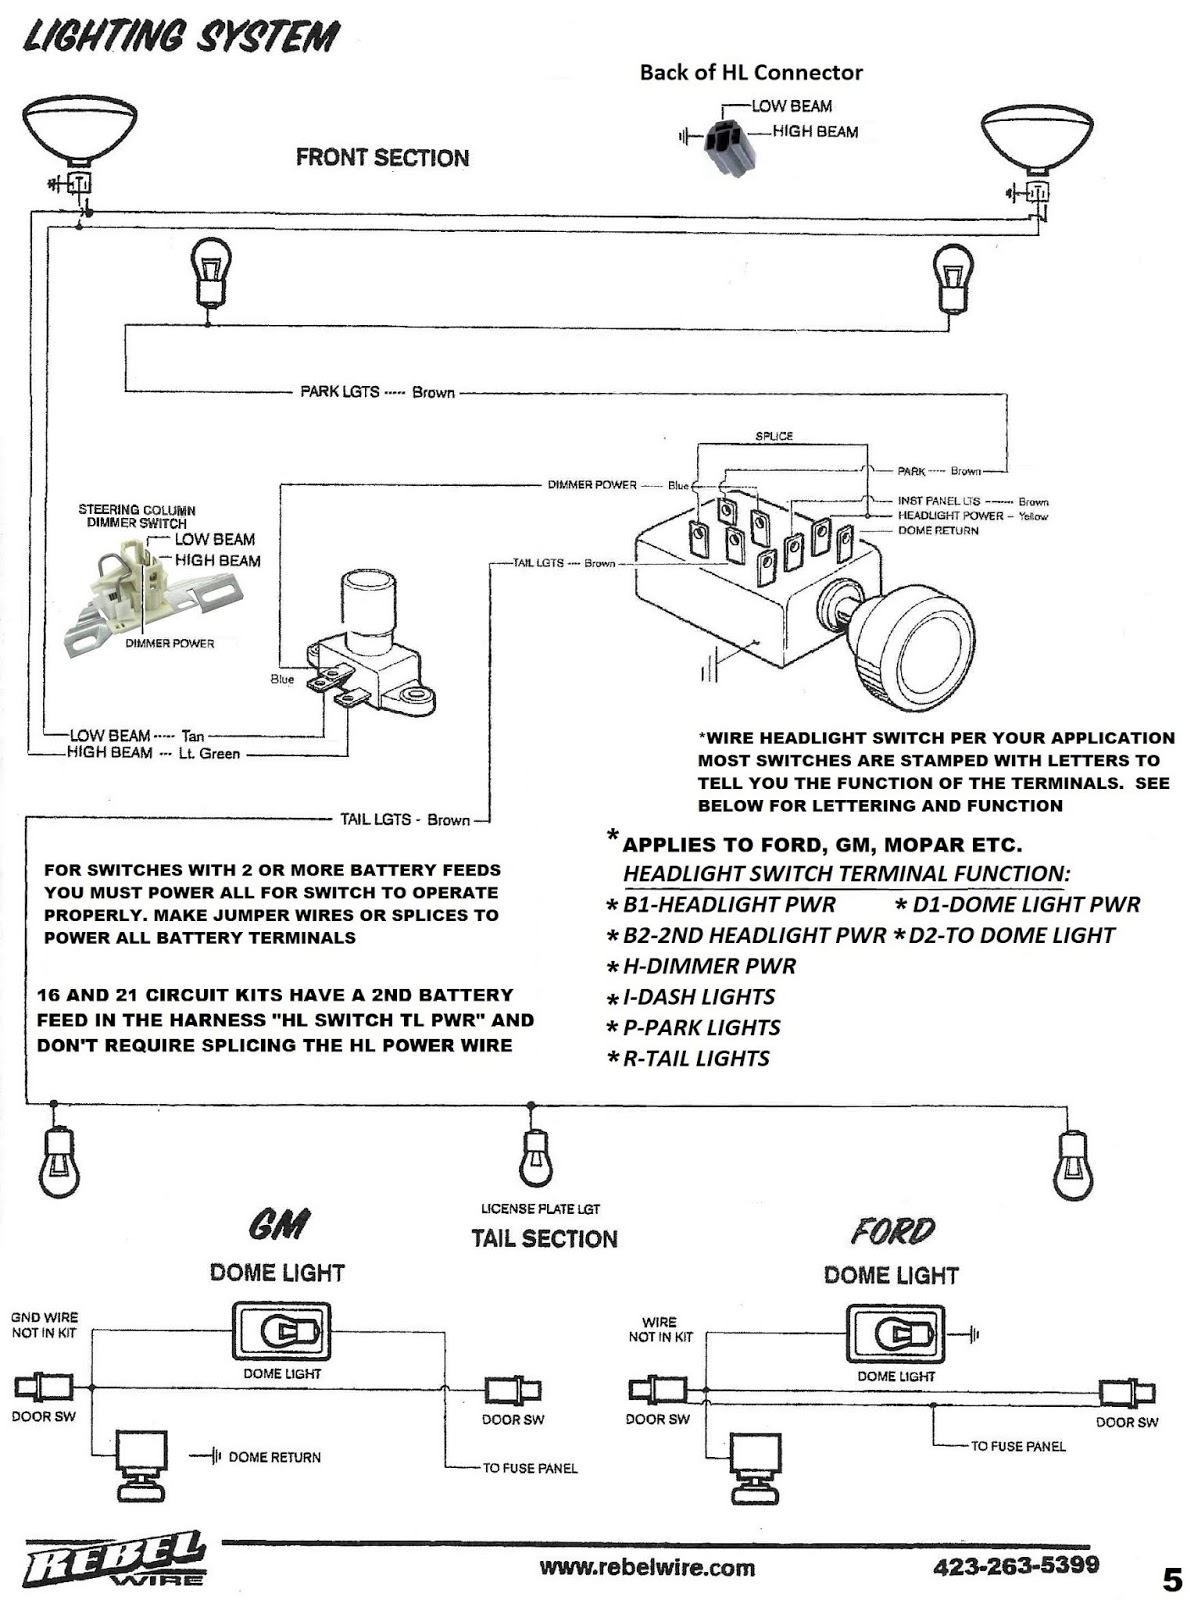 Rebel Wire Gm Wiring Harness Terminals Lighting System Diagram